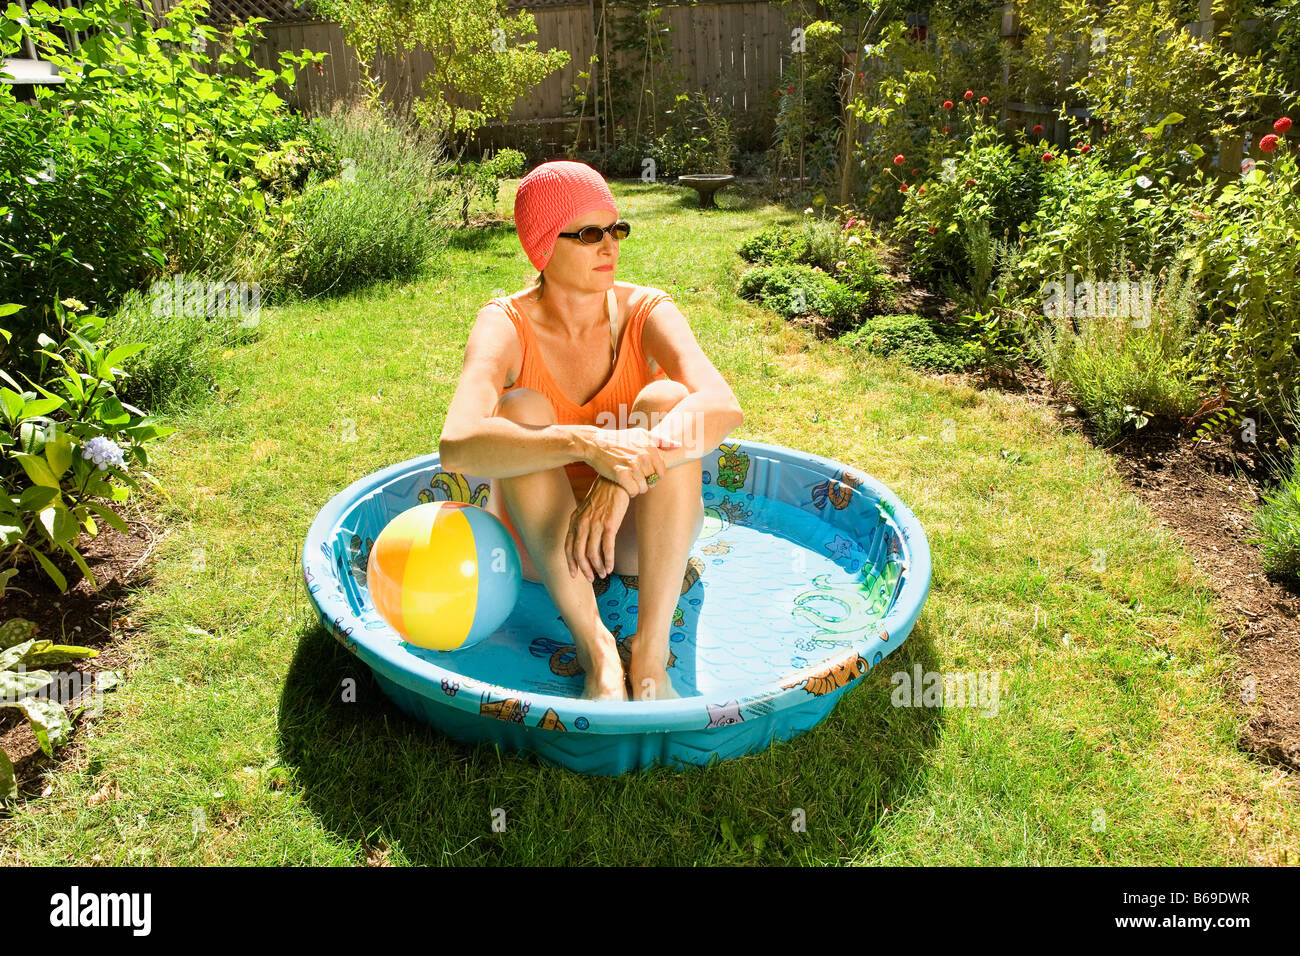 Woman sitting in a wading pool - Stock Image